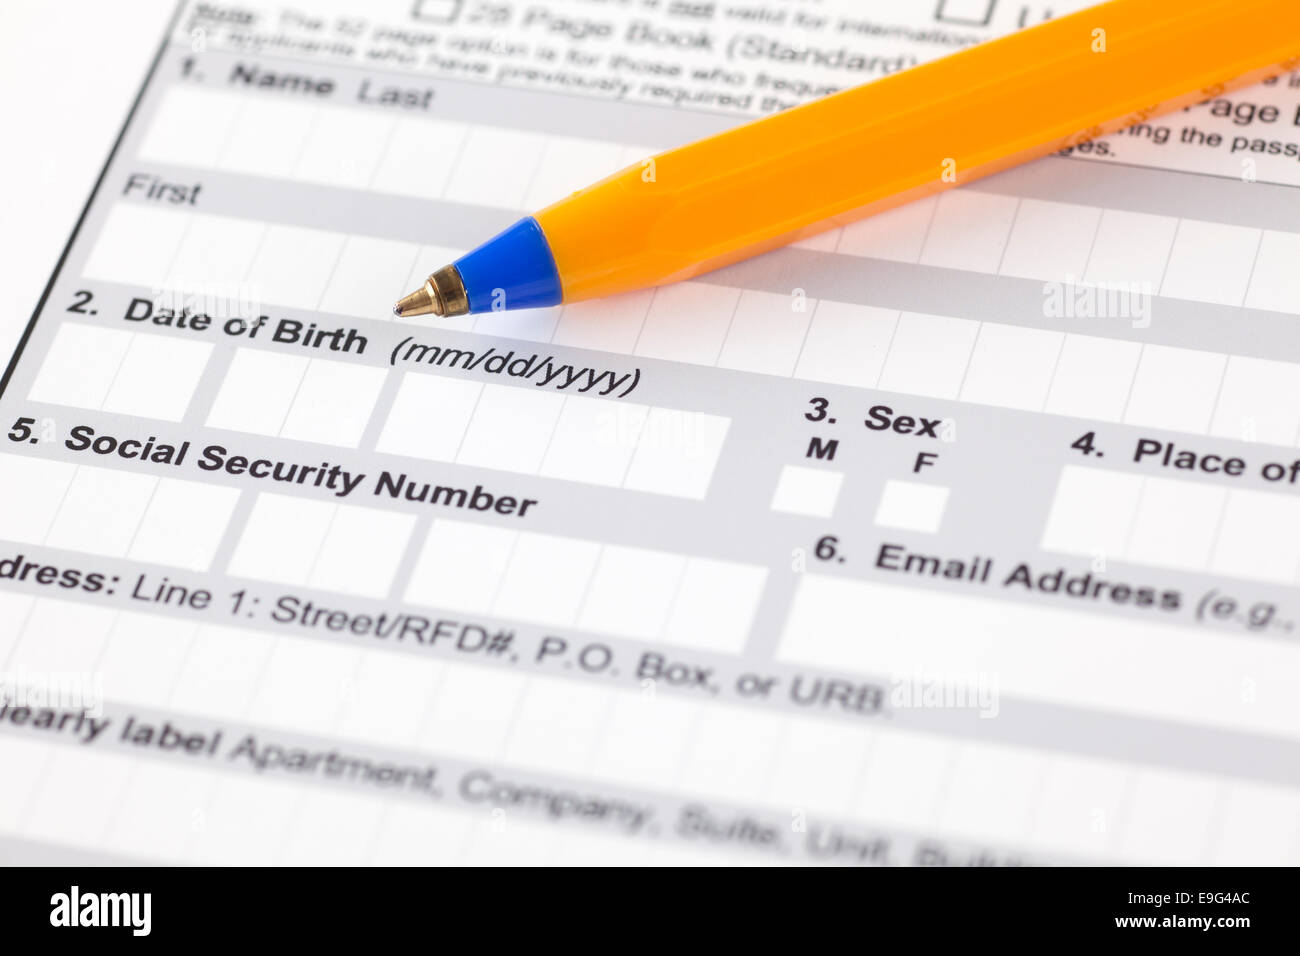 Application form with ballpoint pen. Focus on date of birth and social security number. - Stock Image